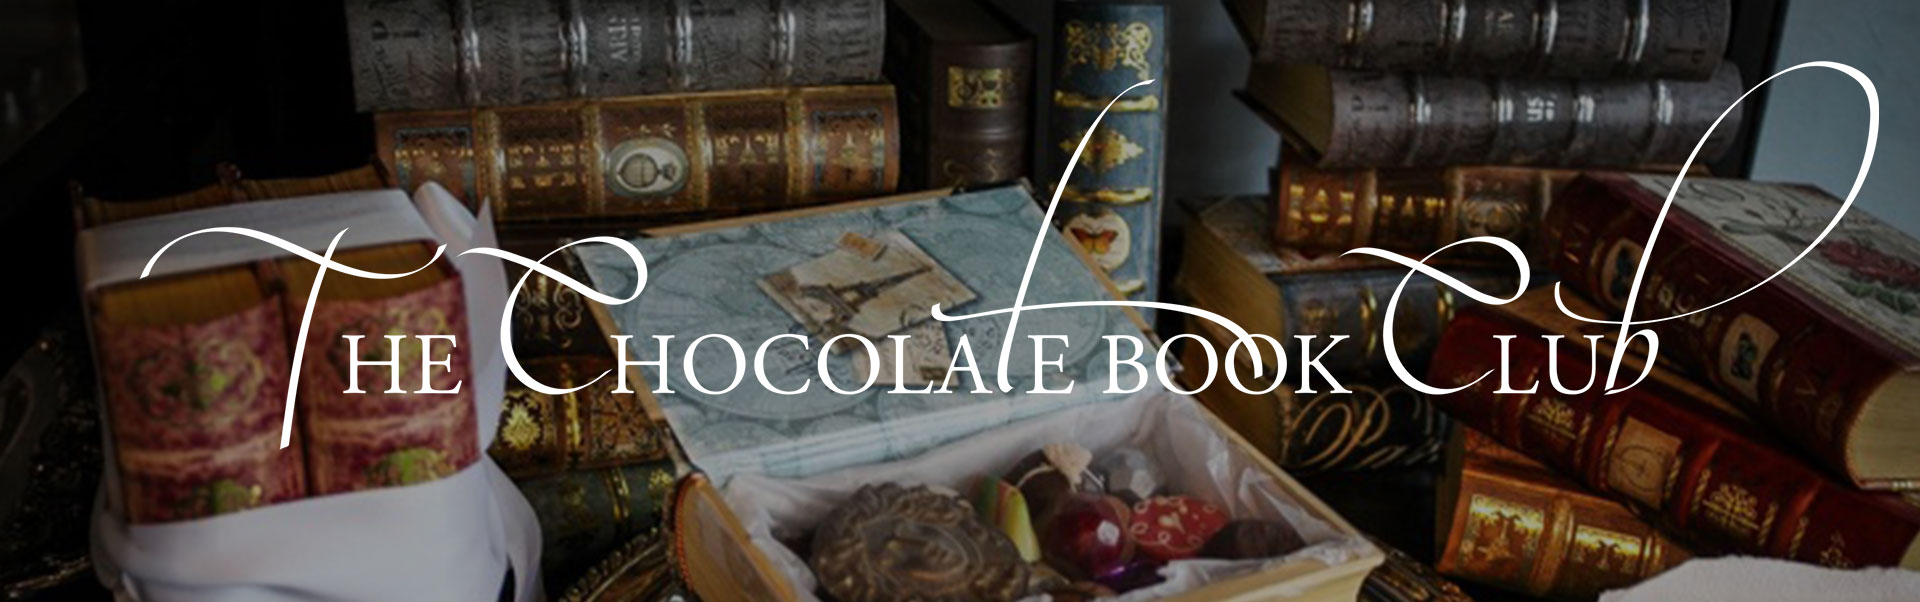 chocolat_book_club_header.jpg